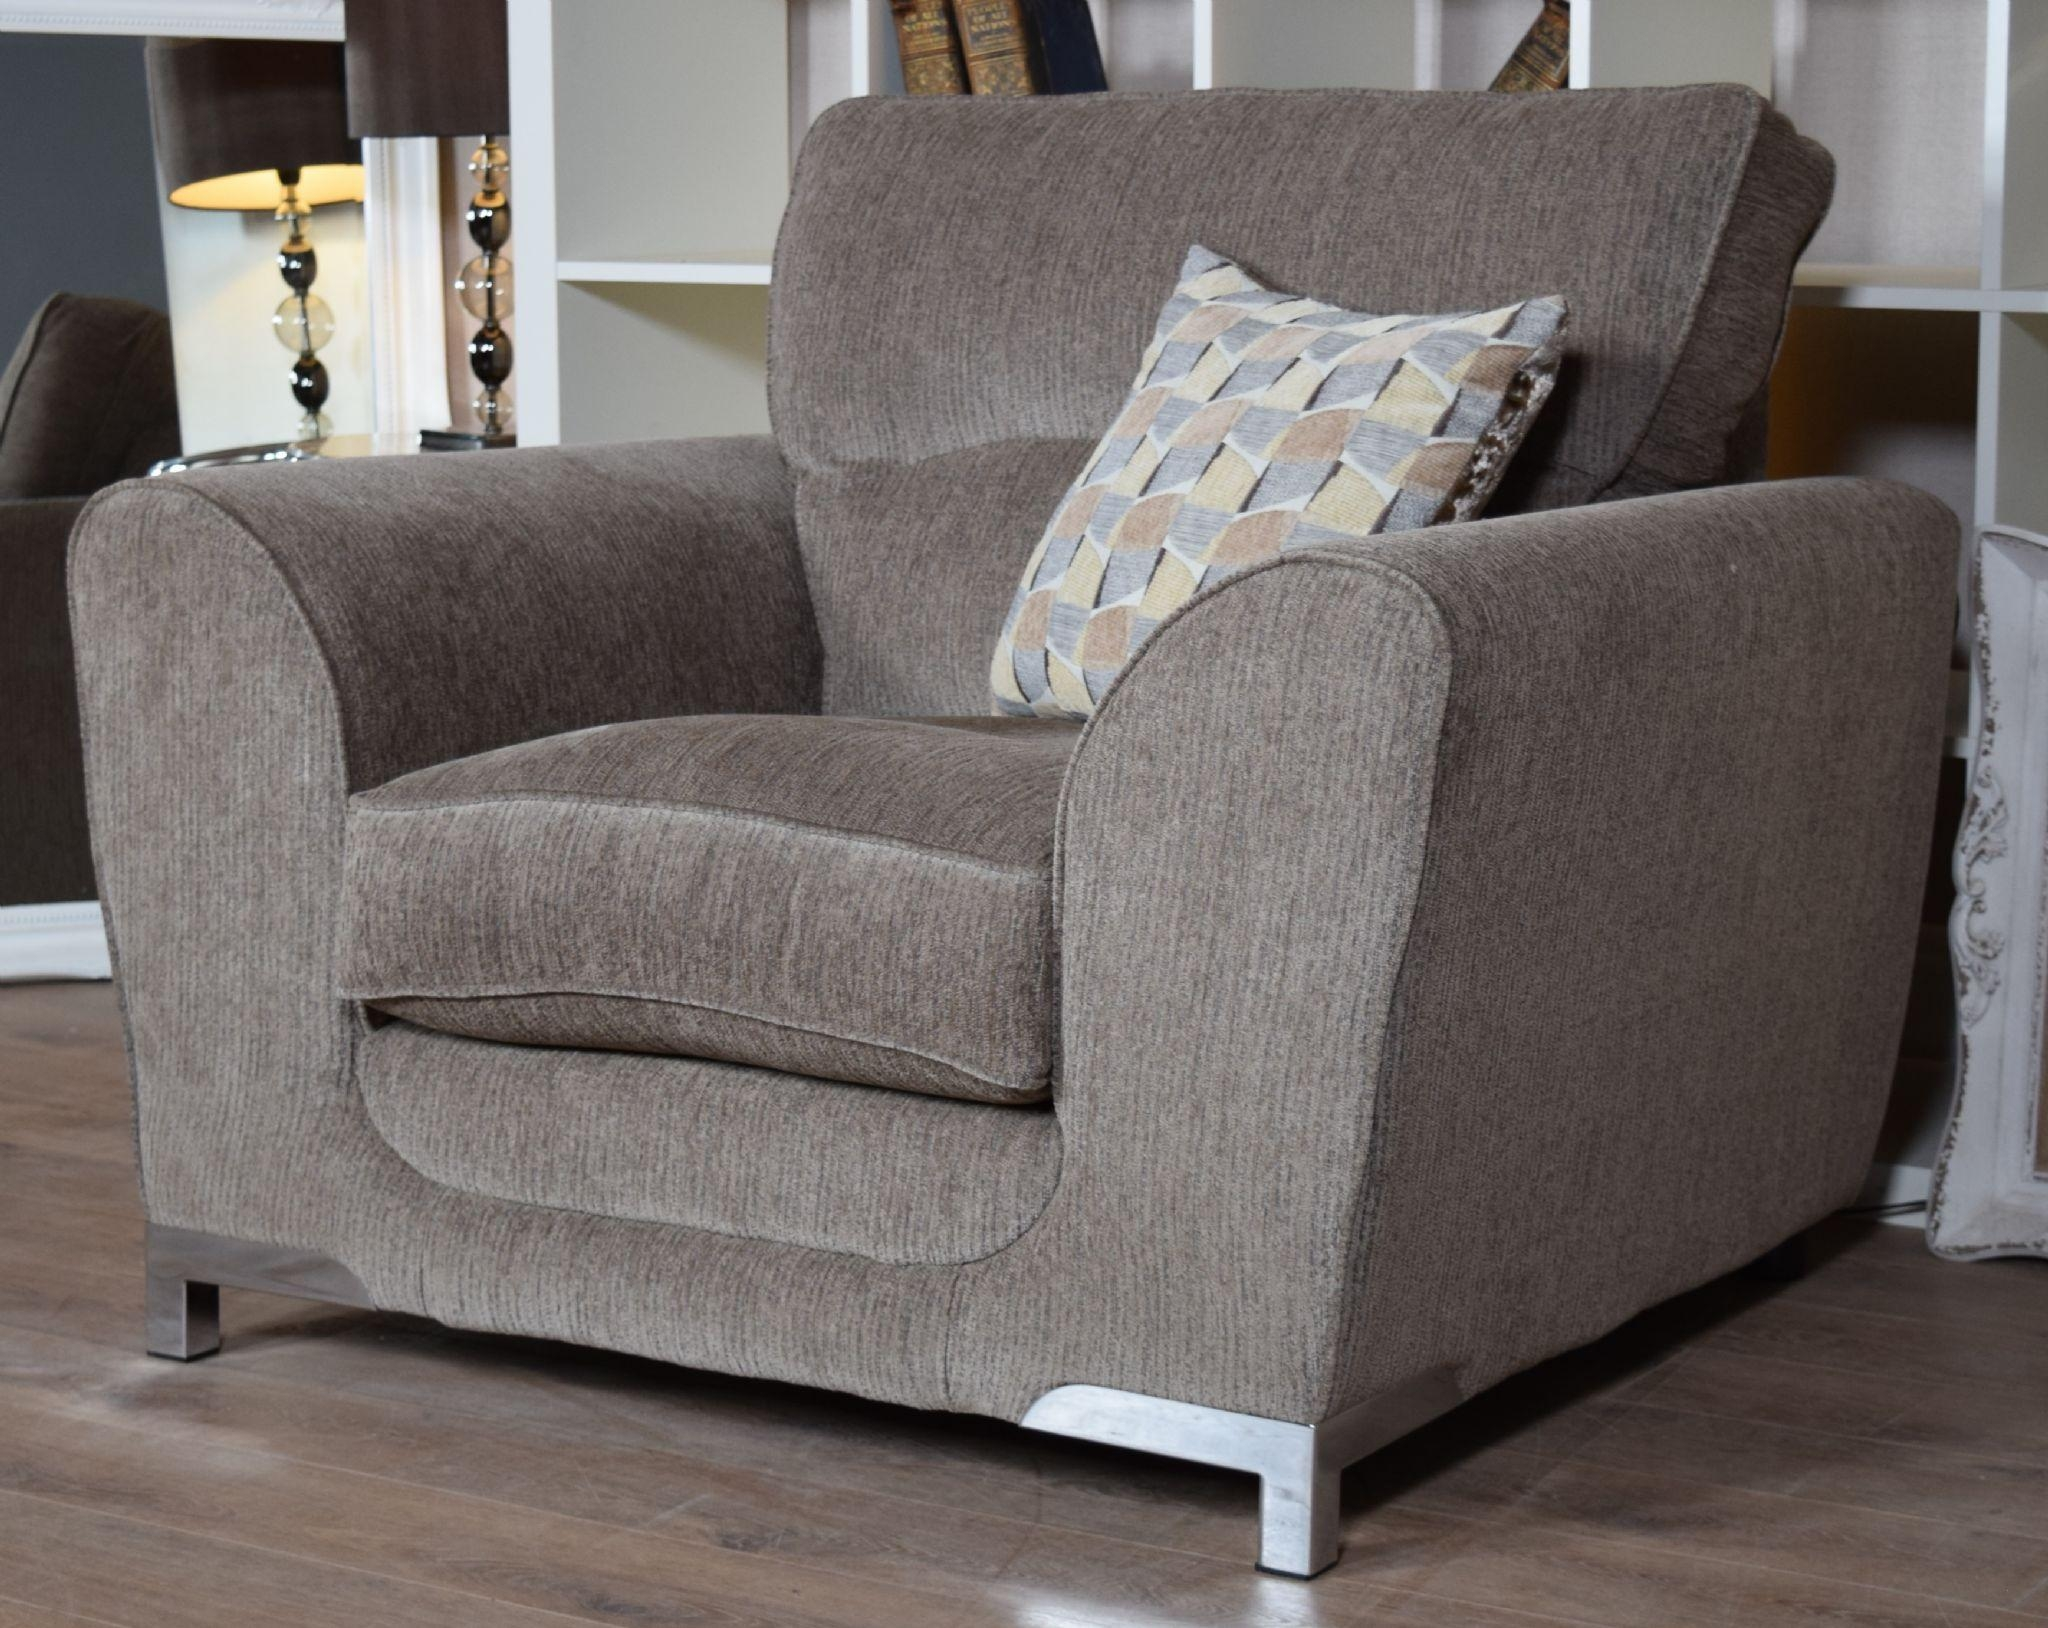 Set Nikki 3 Seater Sofa & Cuddle Chair Suite Set – Mocha Grey For 3 Seater Sofa And Cuddle Chairs (View 4 of 20)